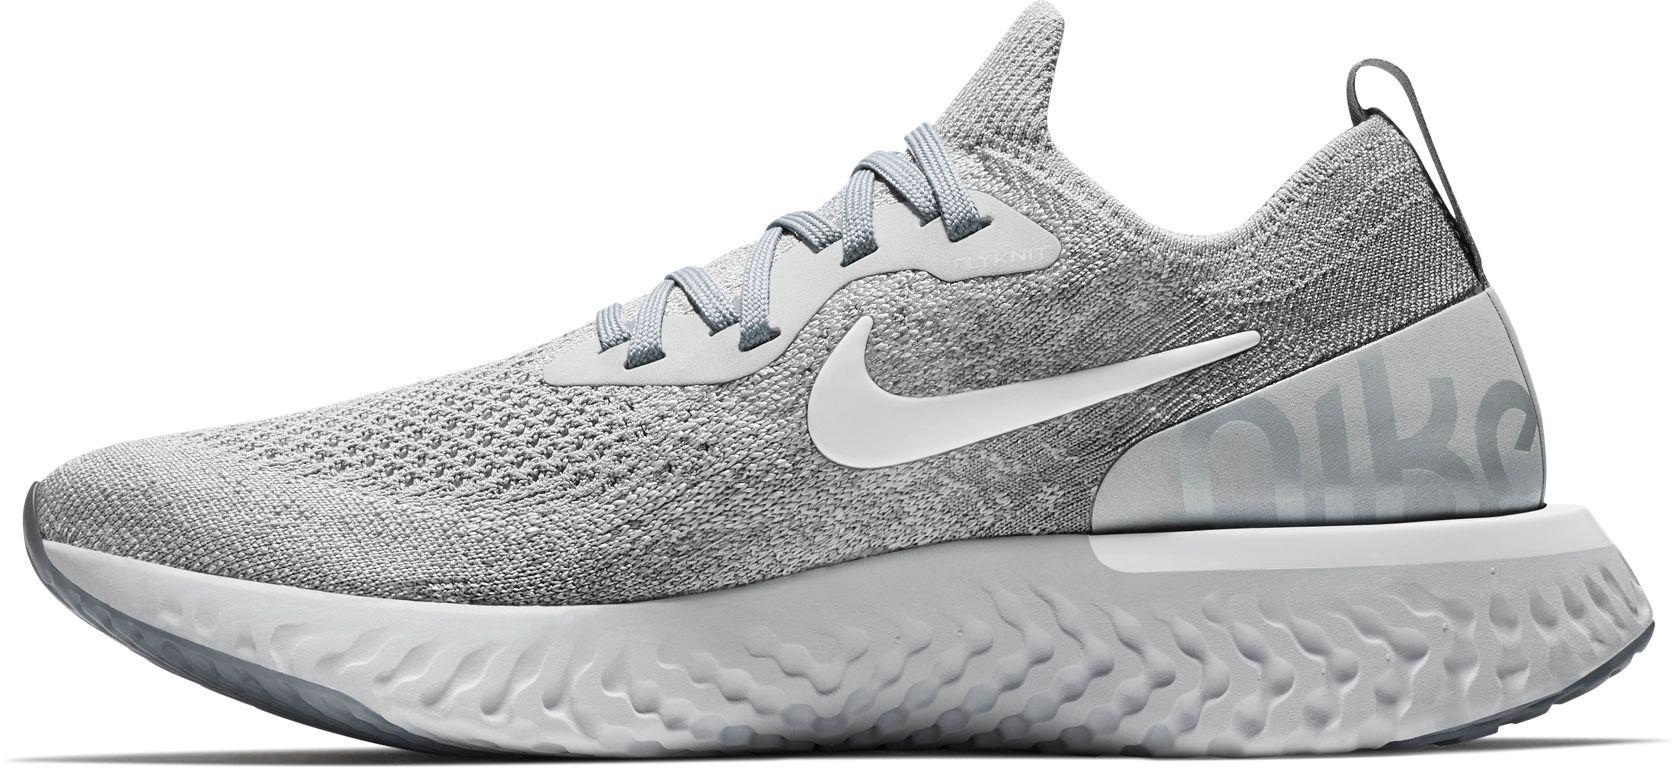 113bb44f8ed79d Lyst - Nike Epic React Flyknit Running Shoes in Gray